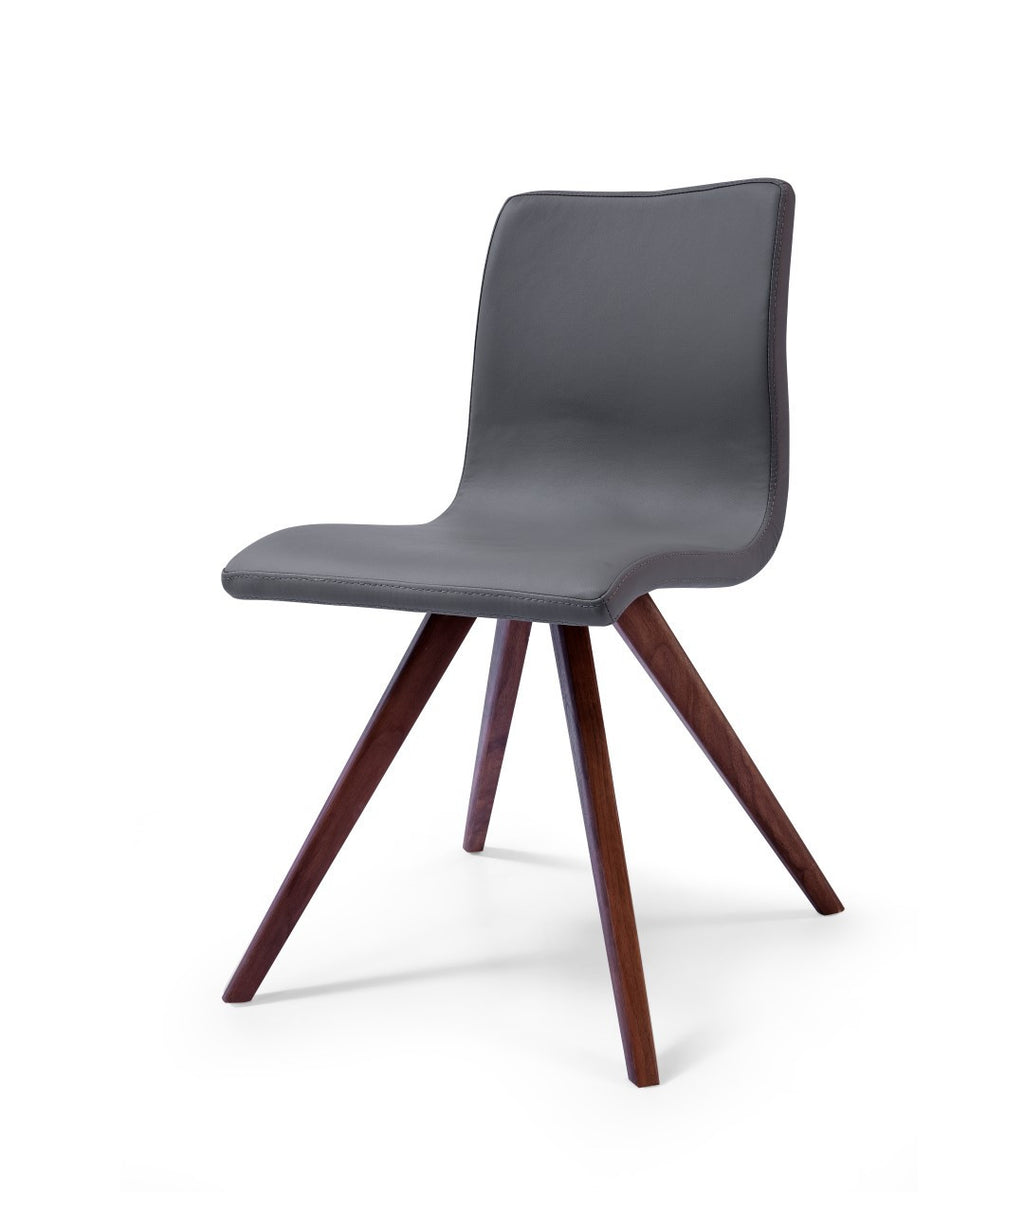 Olga Dining Chair, Gray Faux Leather, Natural walnut Solid Wood Legs